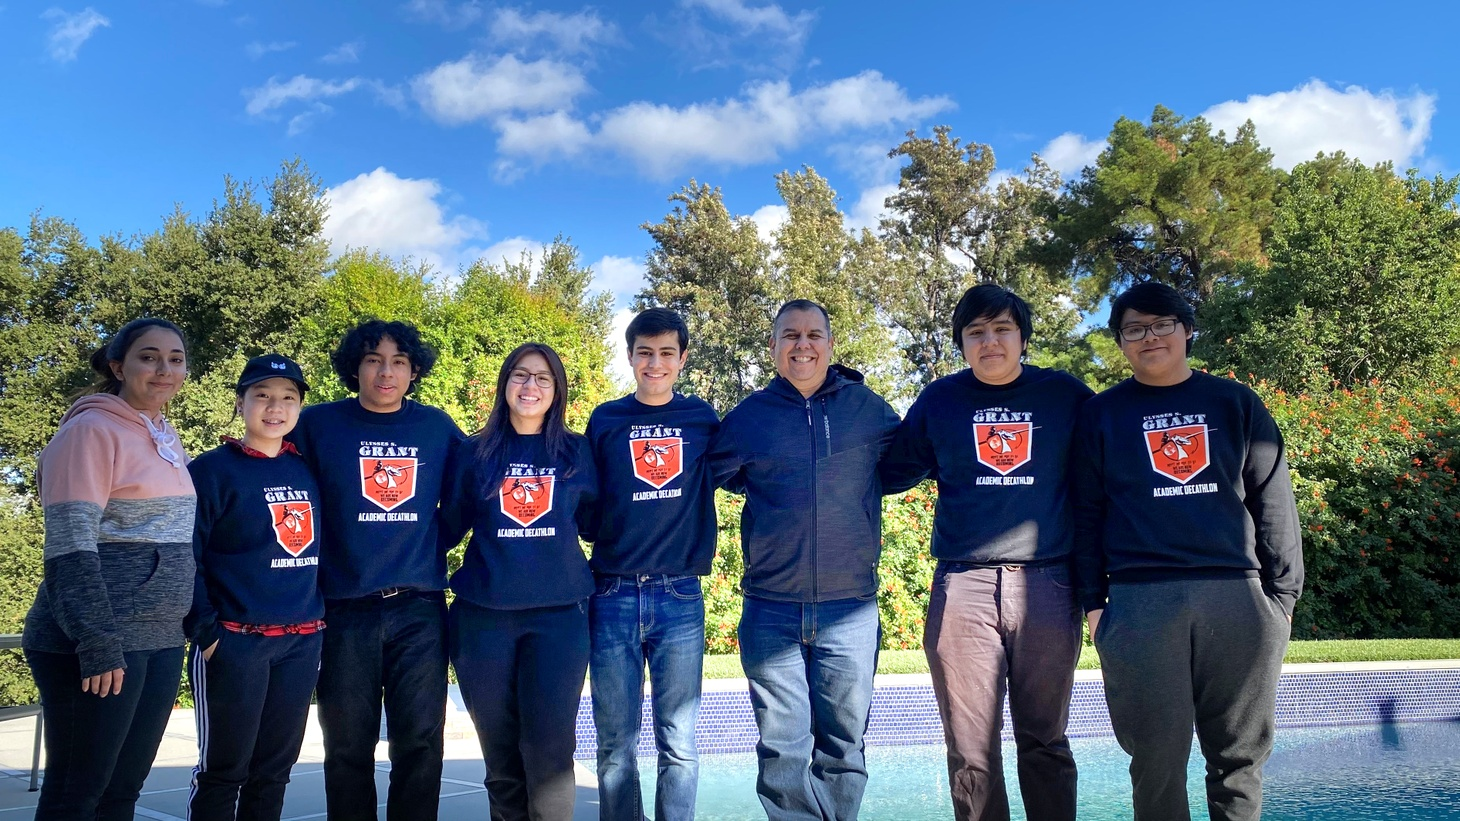 The Grant High School decathlon team in early 2020. Due to the pandemic, this year's team has been unable to meet up in person to practice or compete.